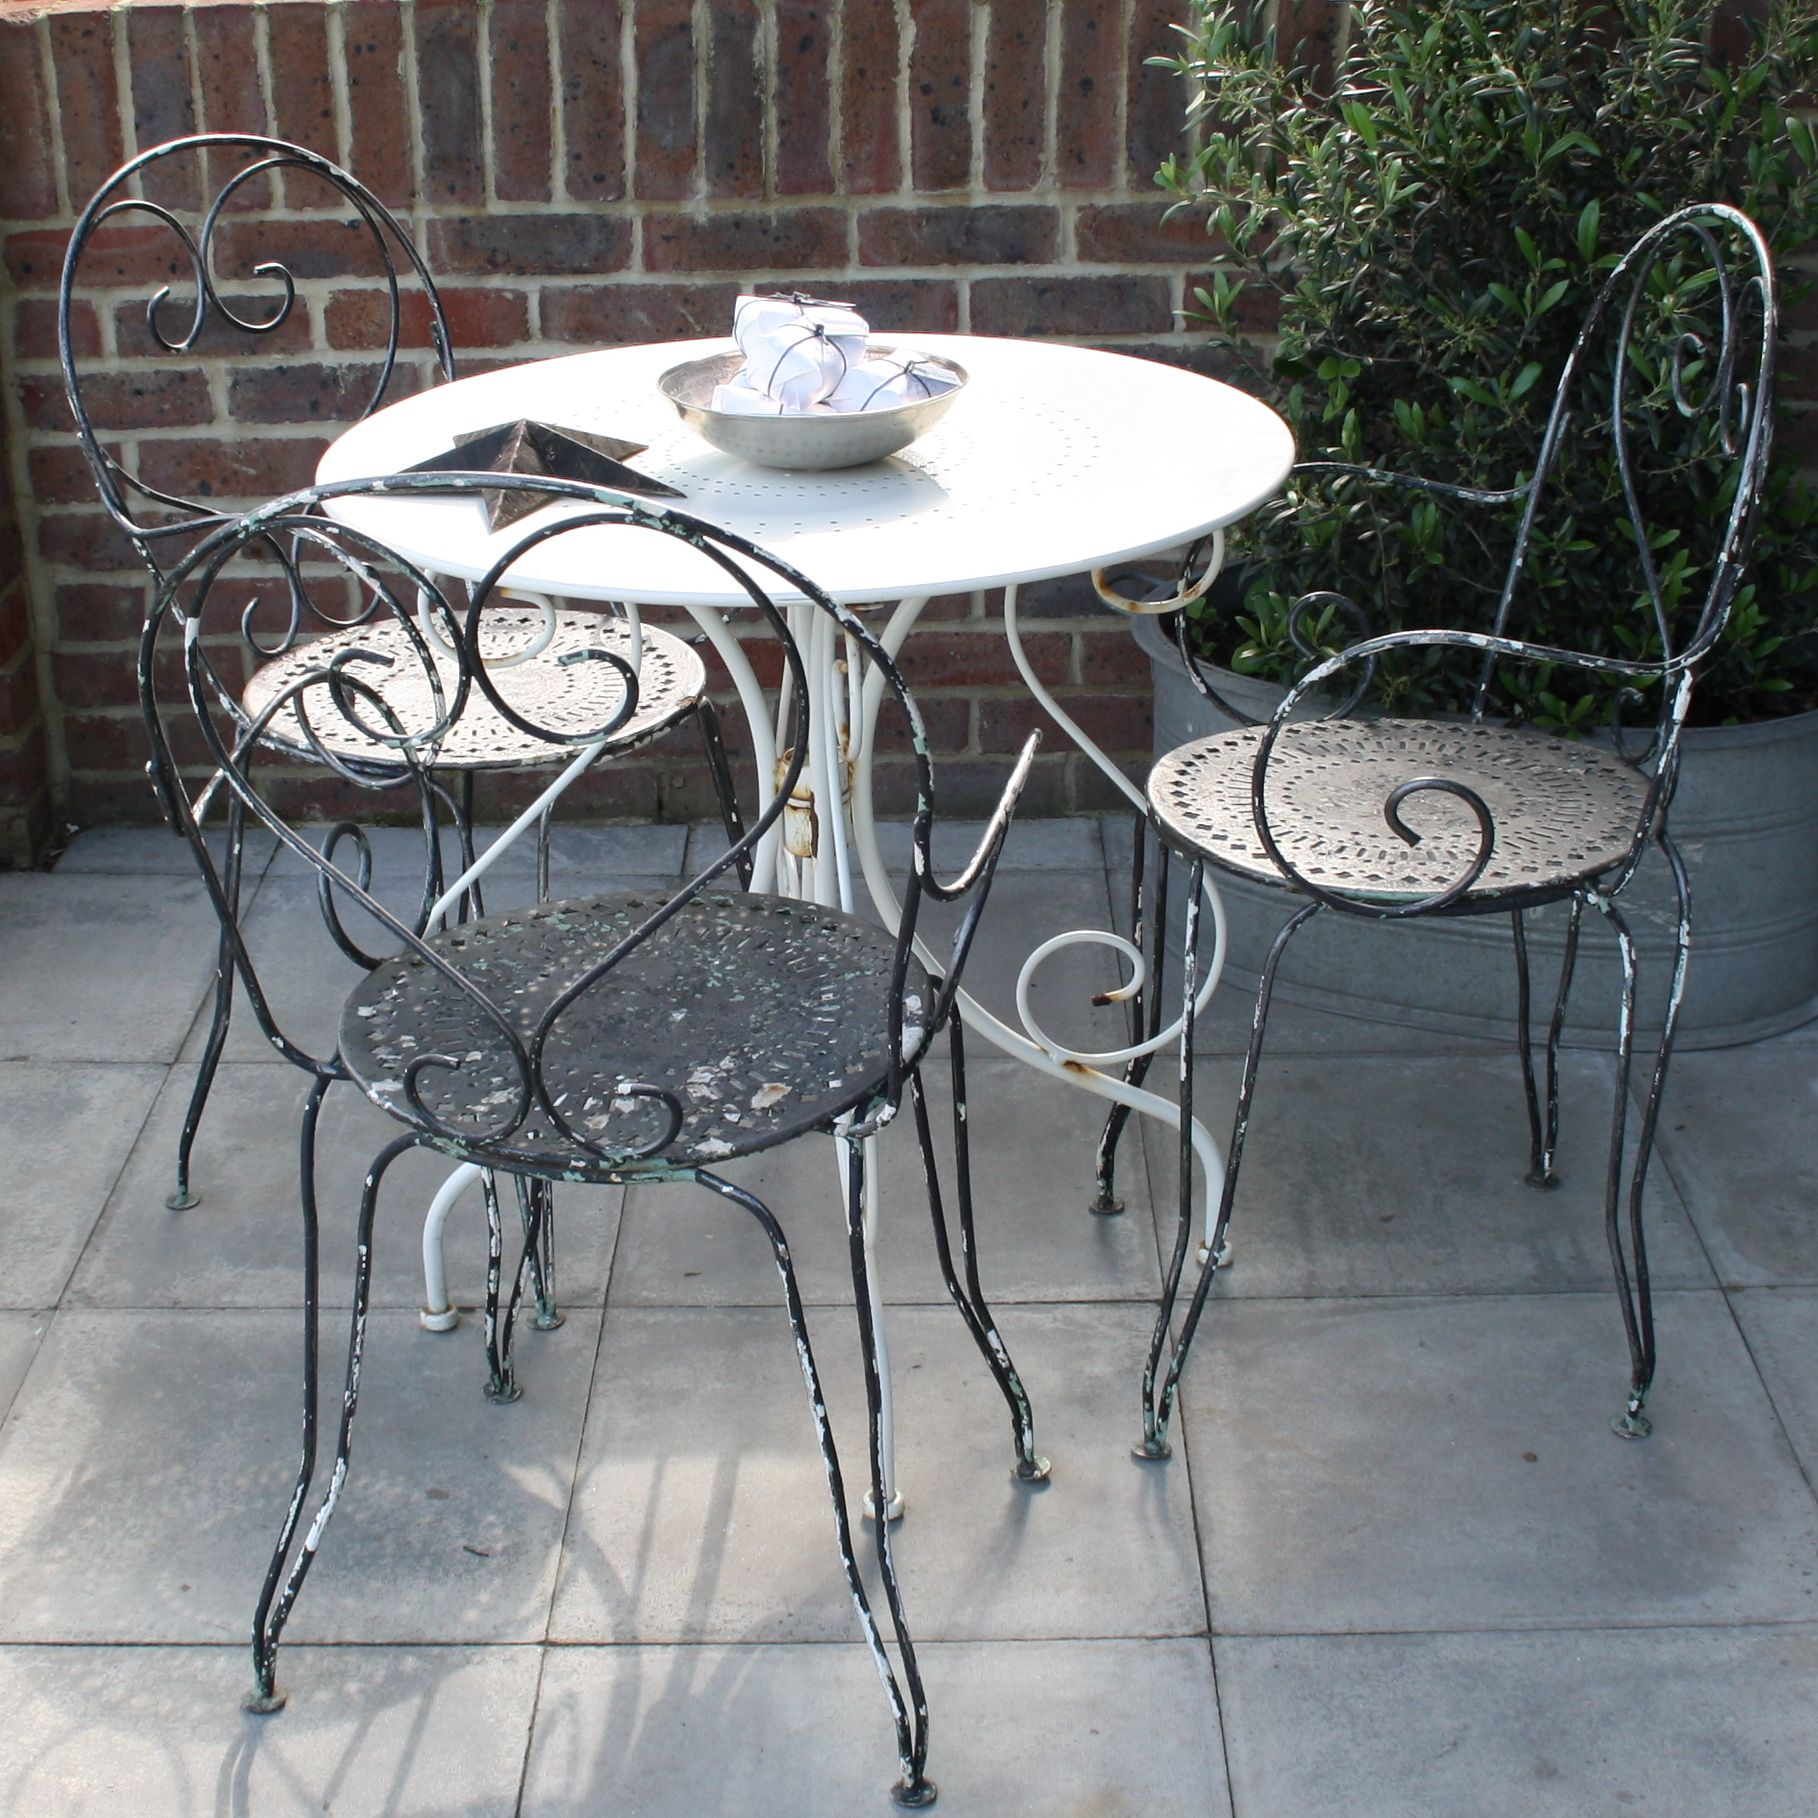 Vintage French Bistro Set Www Designvintage Co Uk